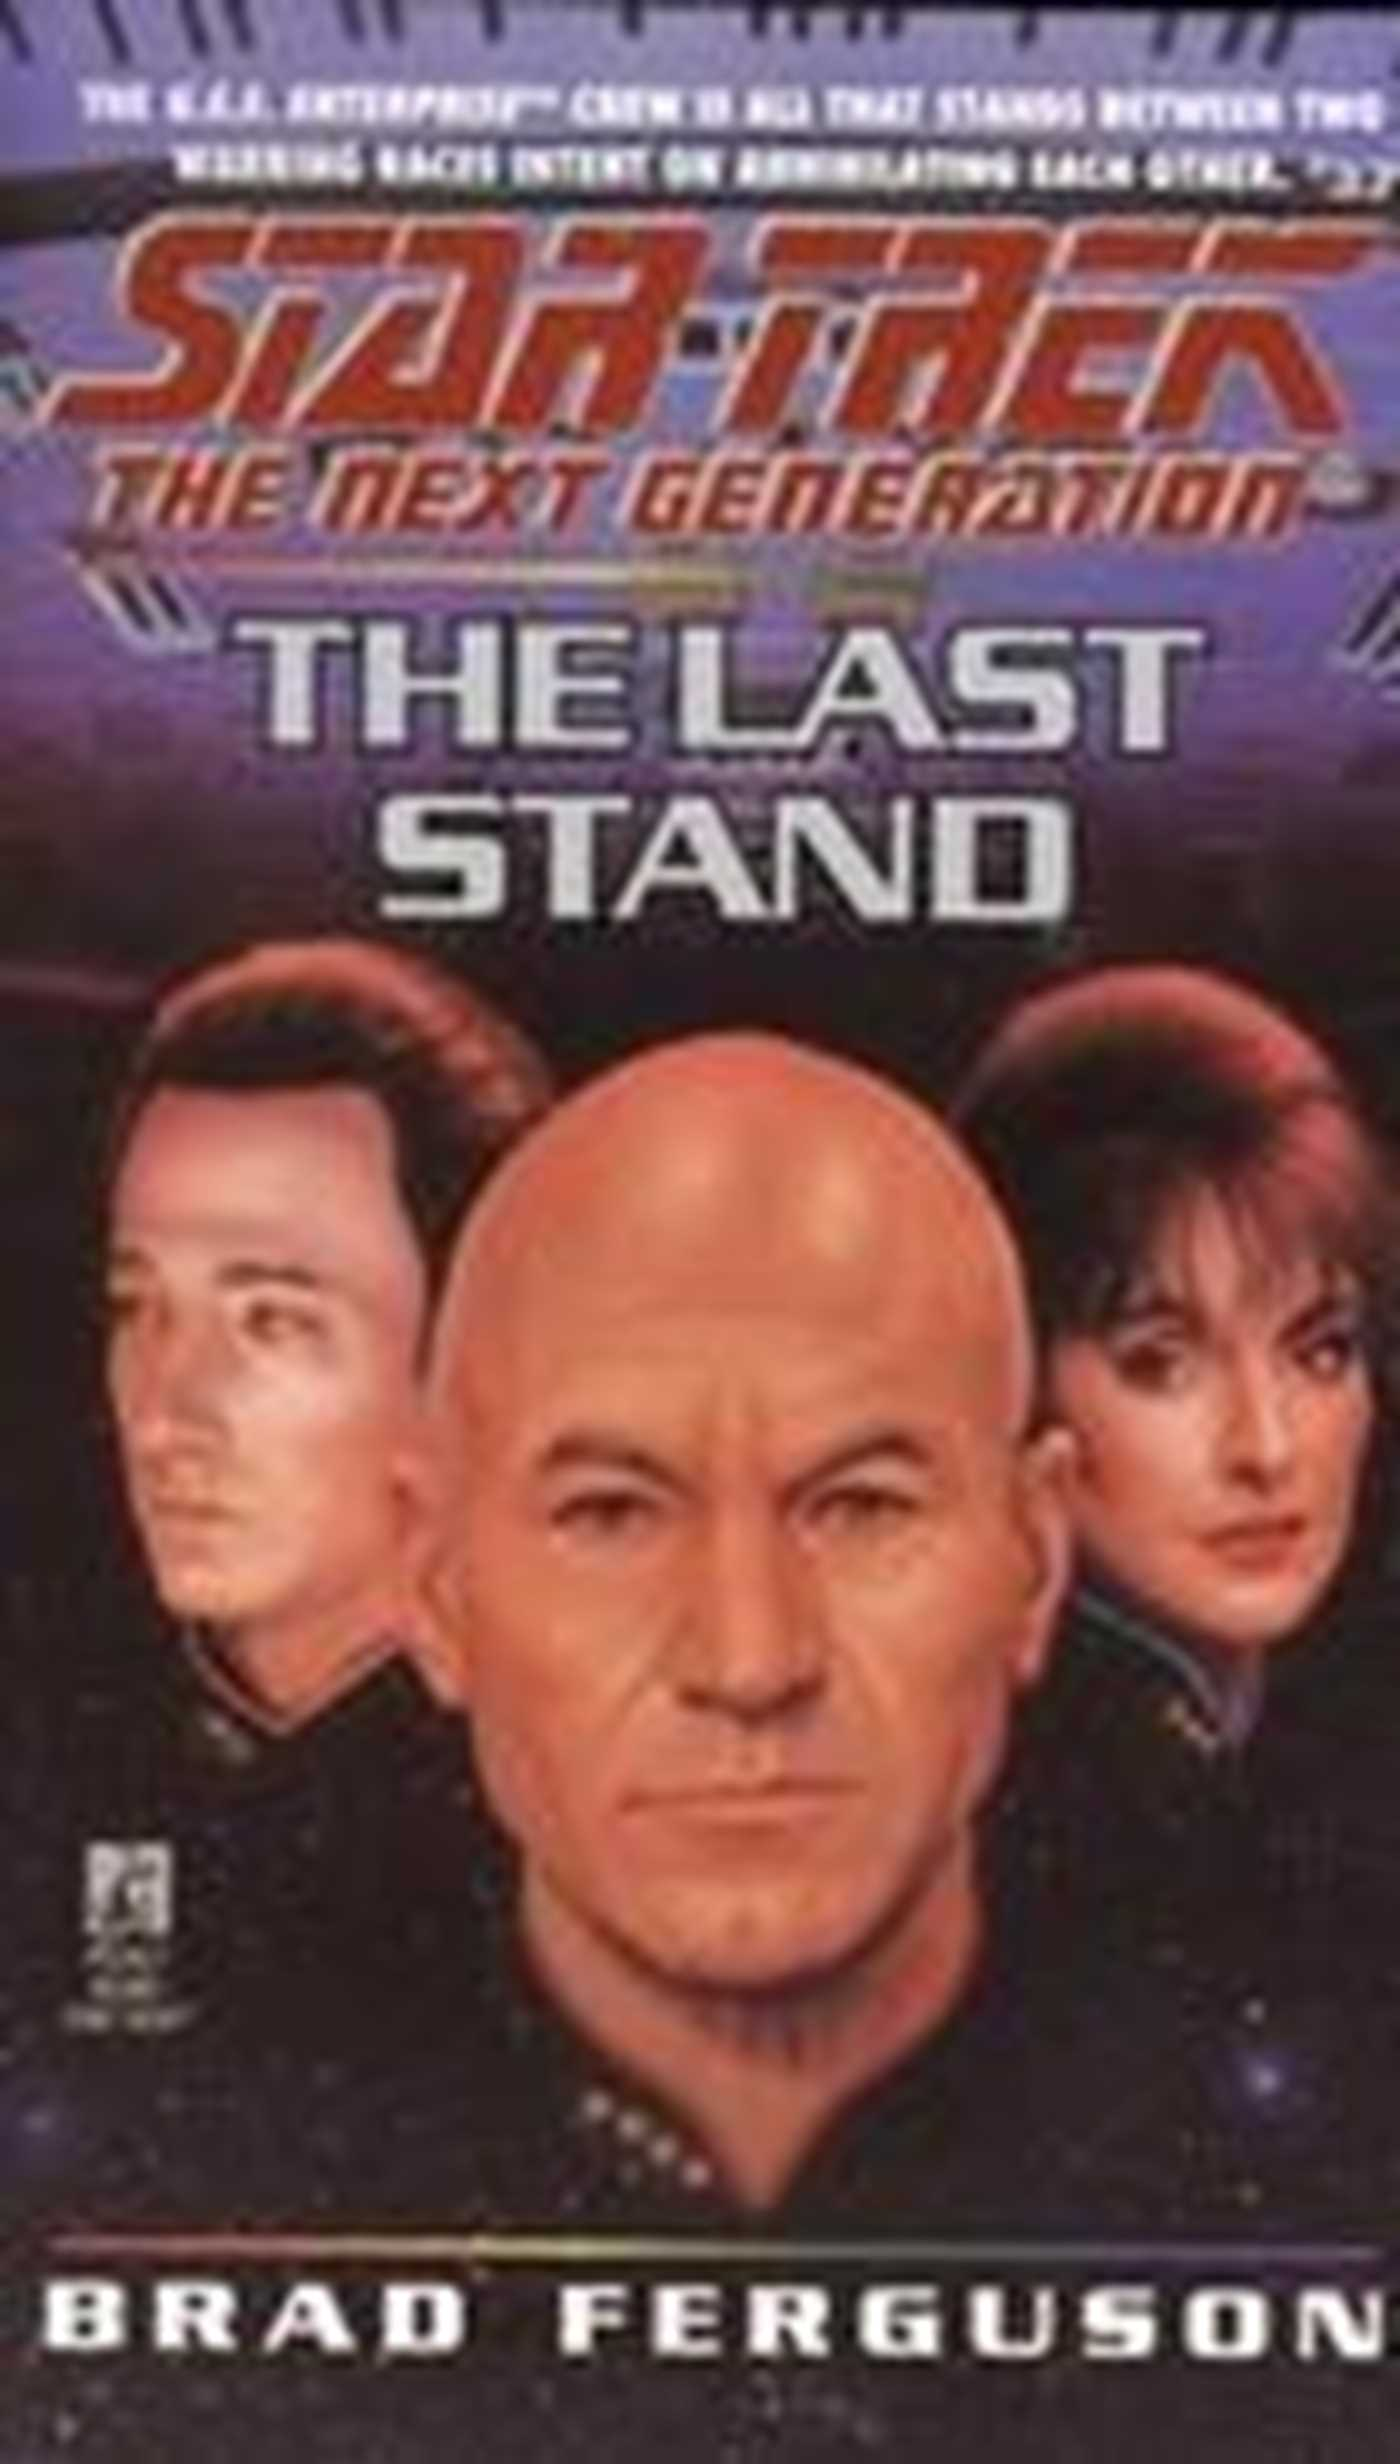 The last stand 9780743421393 hr